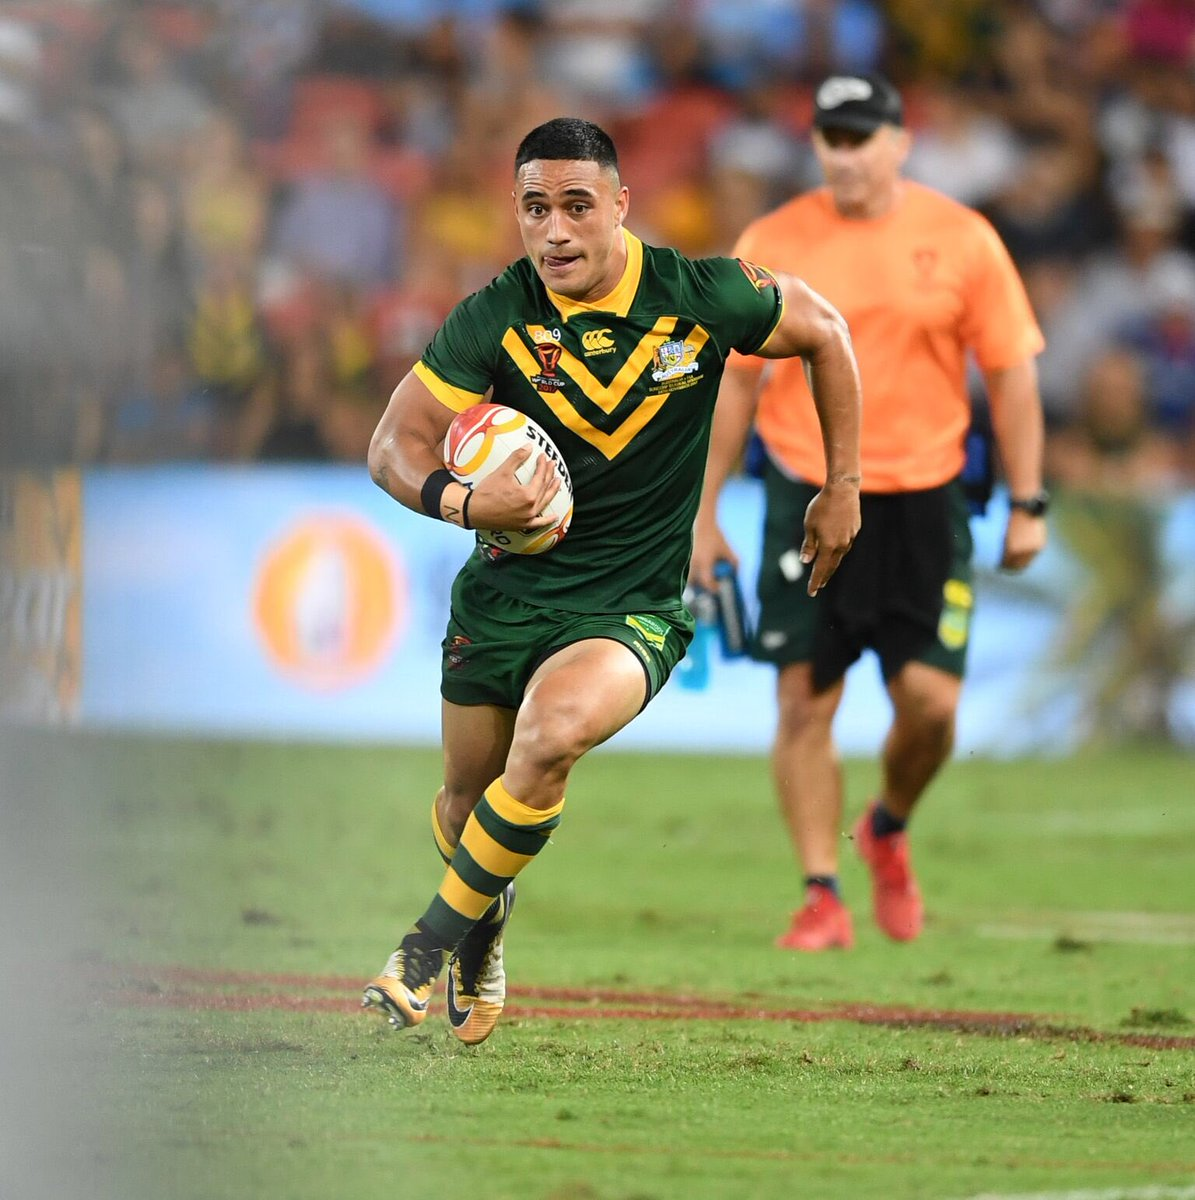 Valentine Holmes On Twitter What A Night To Remember Roos2k17 809